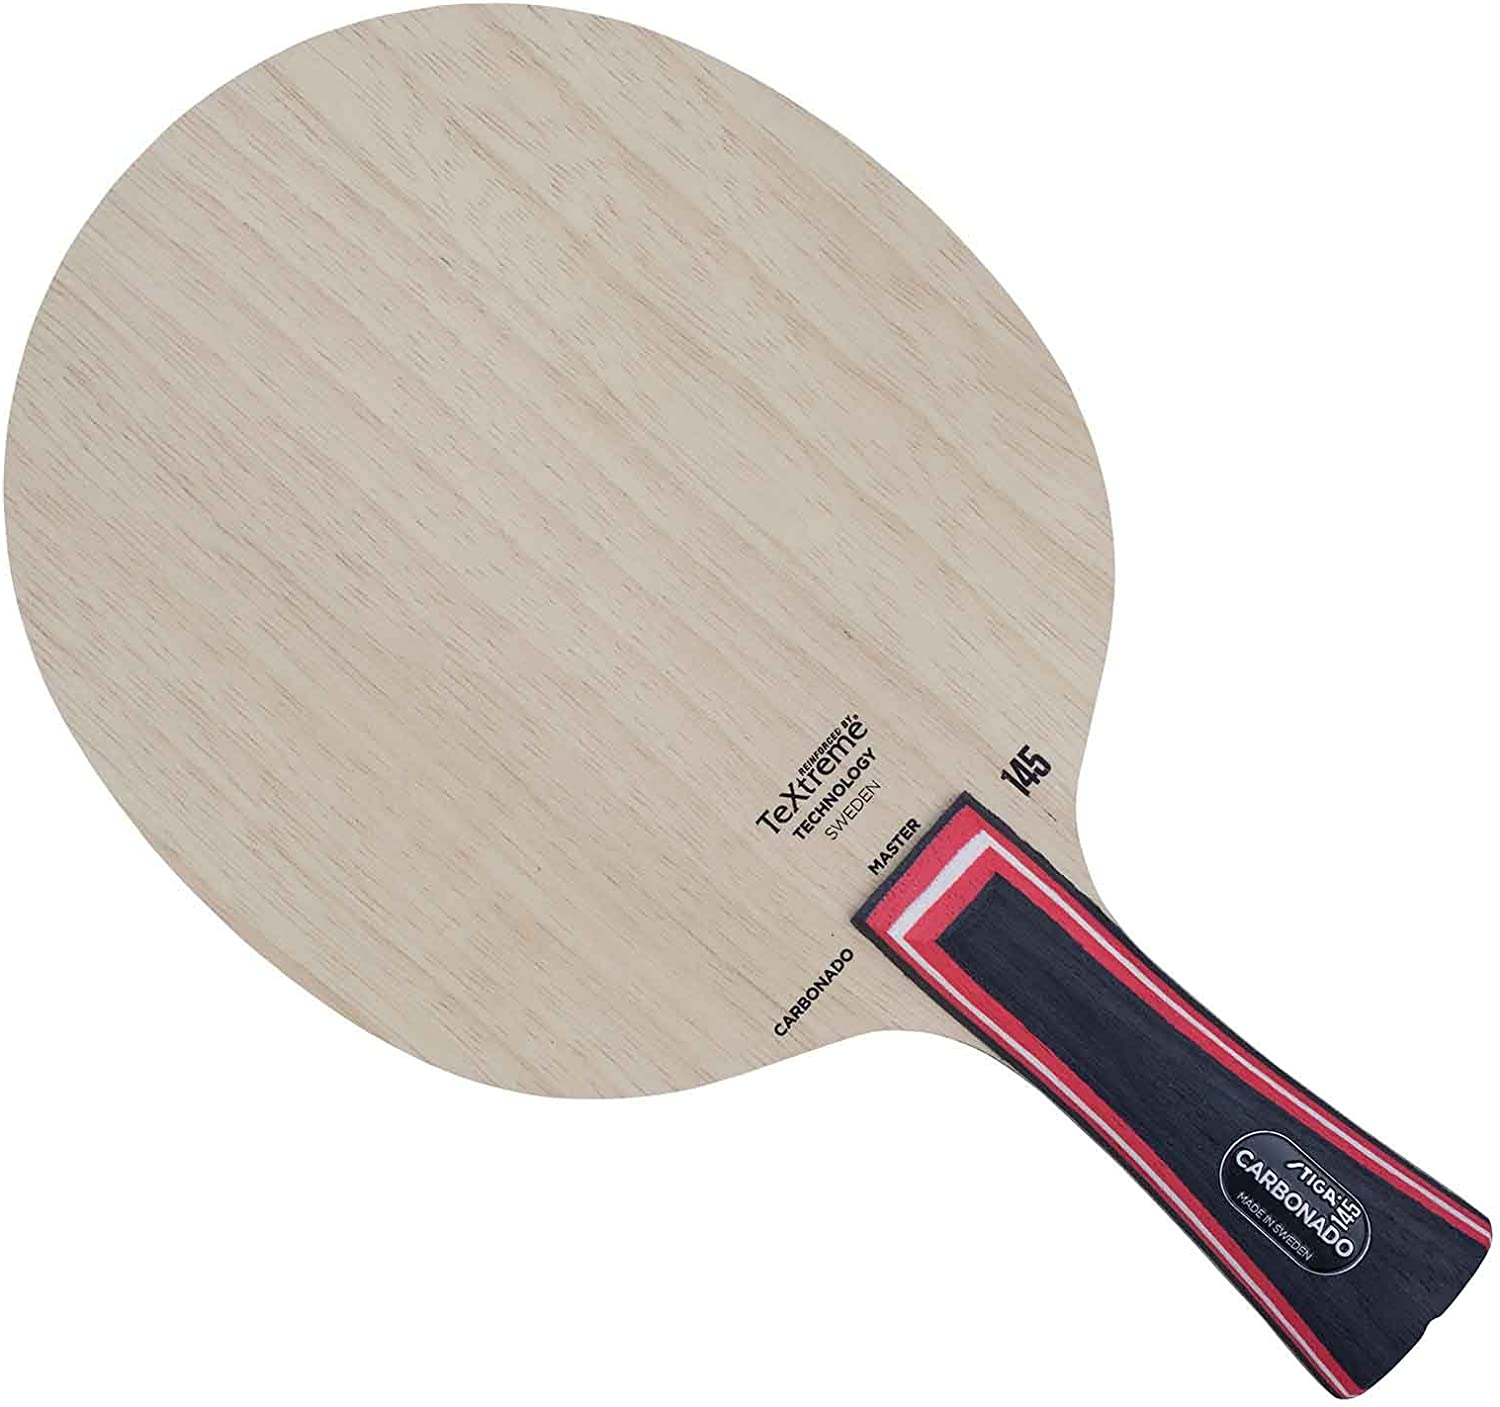 Stiga Carbonado 145 (Classic Grip) Table Tennis Blade, Wood, One Size